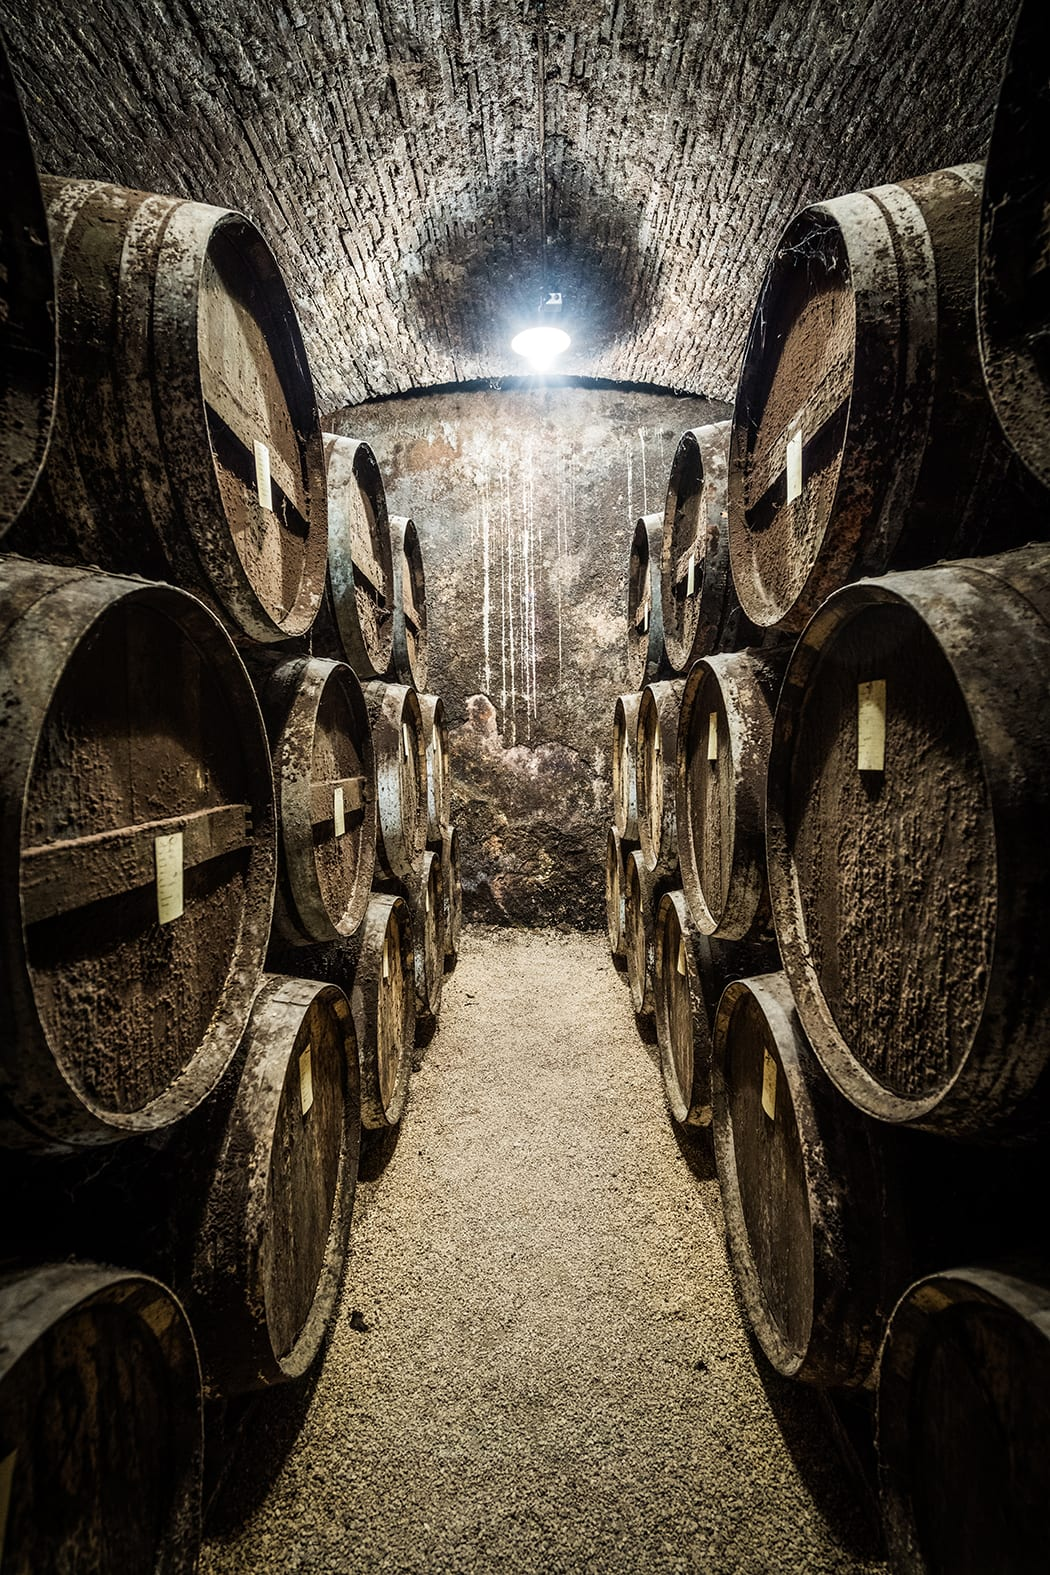 Barrels of Armagnac aging in one of the cellars maintained by Chateau du Tariquet in the Bas-Armagnac region of Gascony.